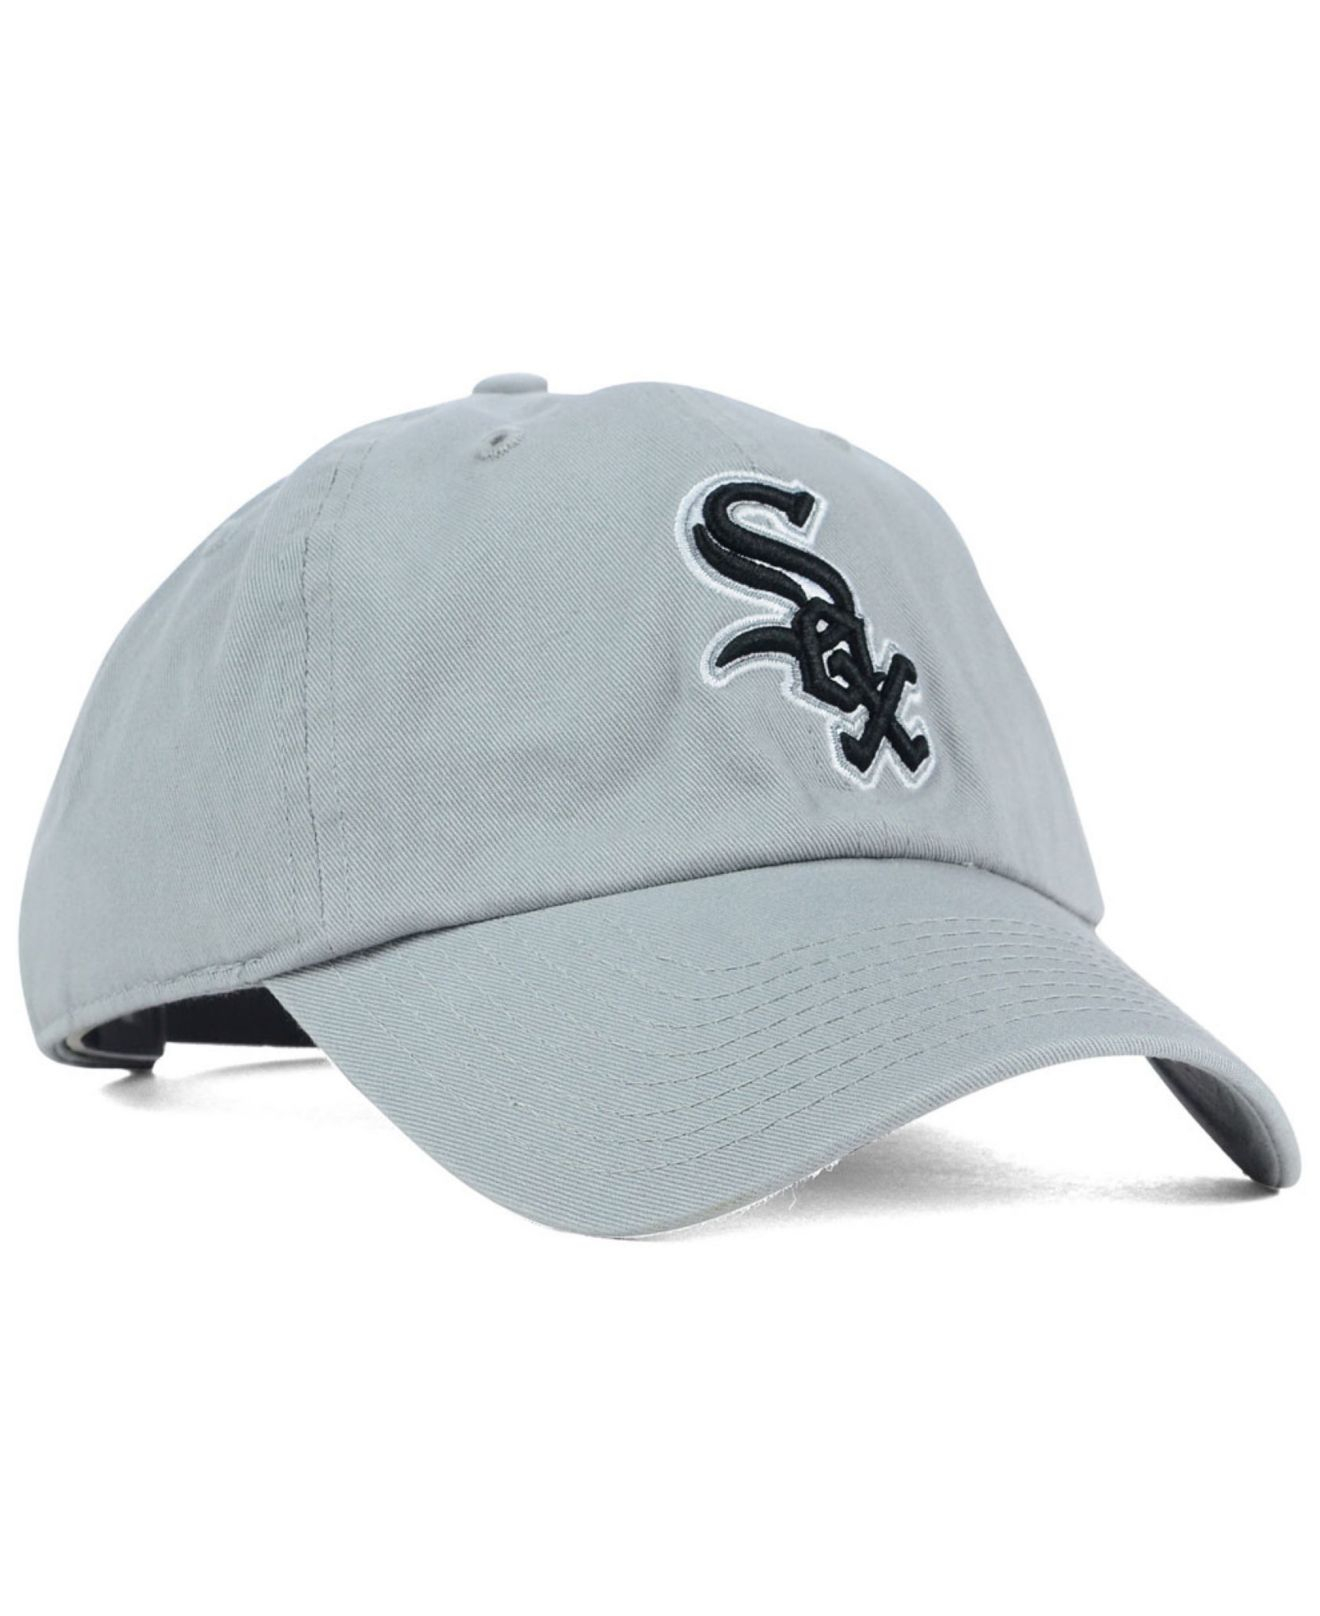 4e57f855c16c5 ... new zealand lyst 47 brand chicago white sox adjustable cap in gray for  men 5c837 e5651